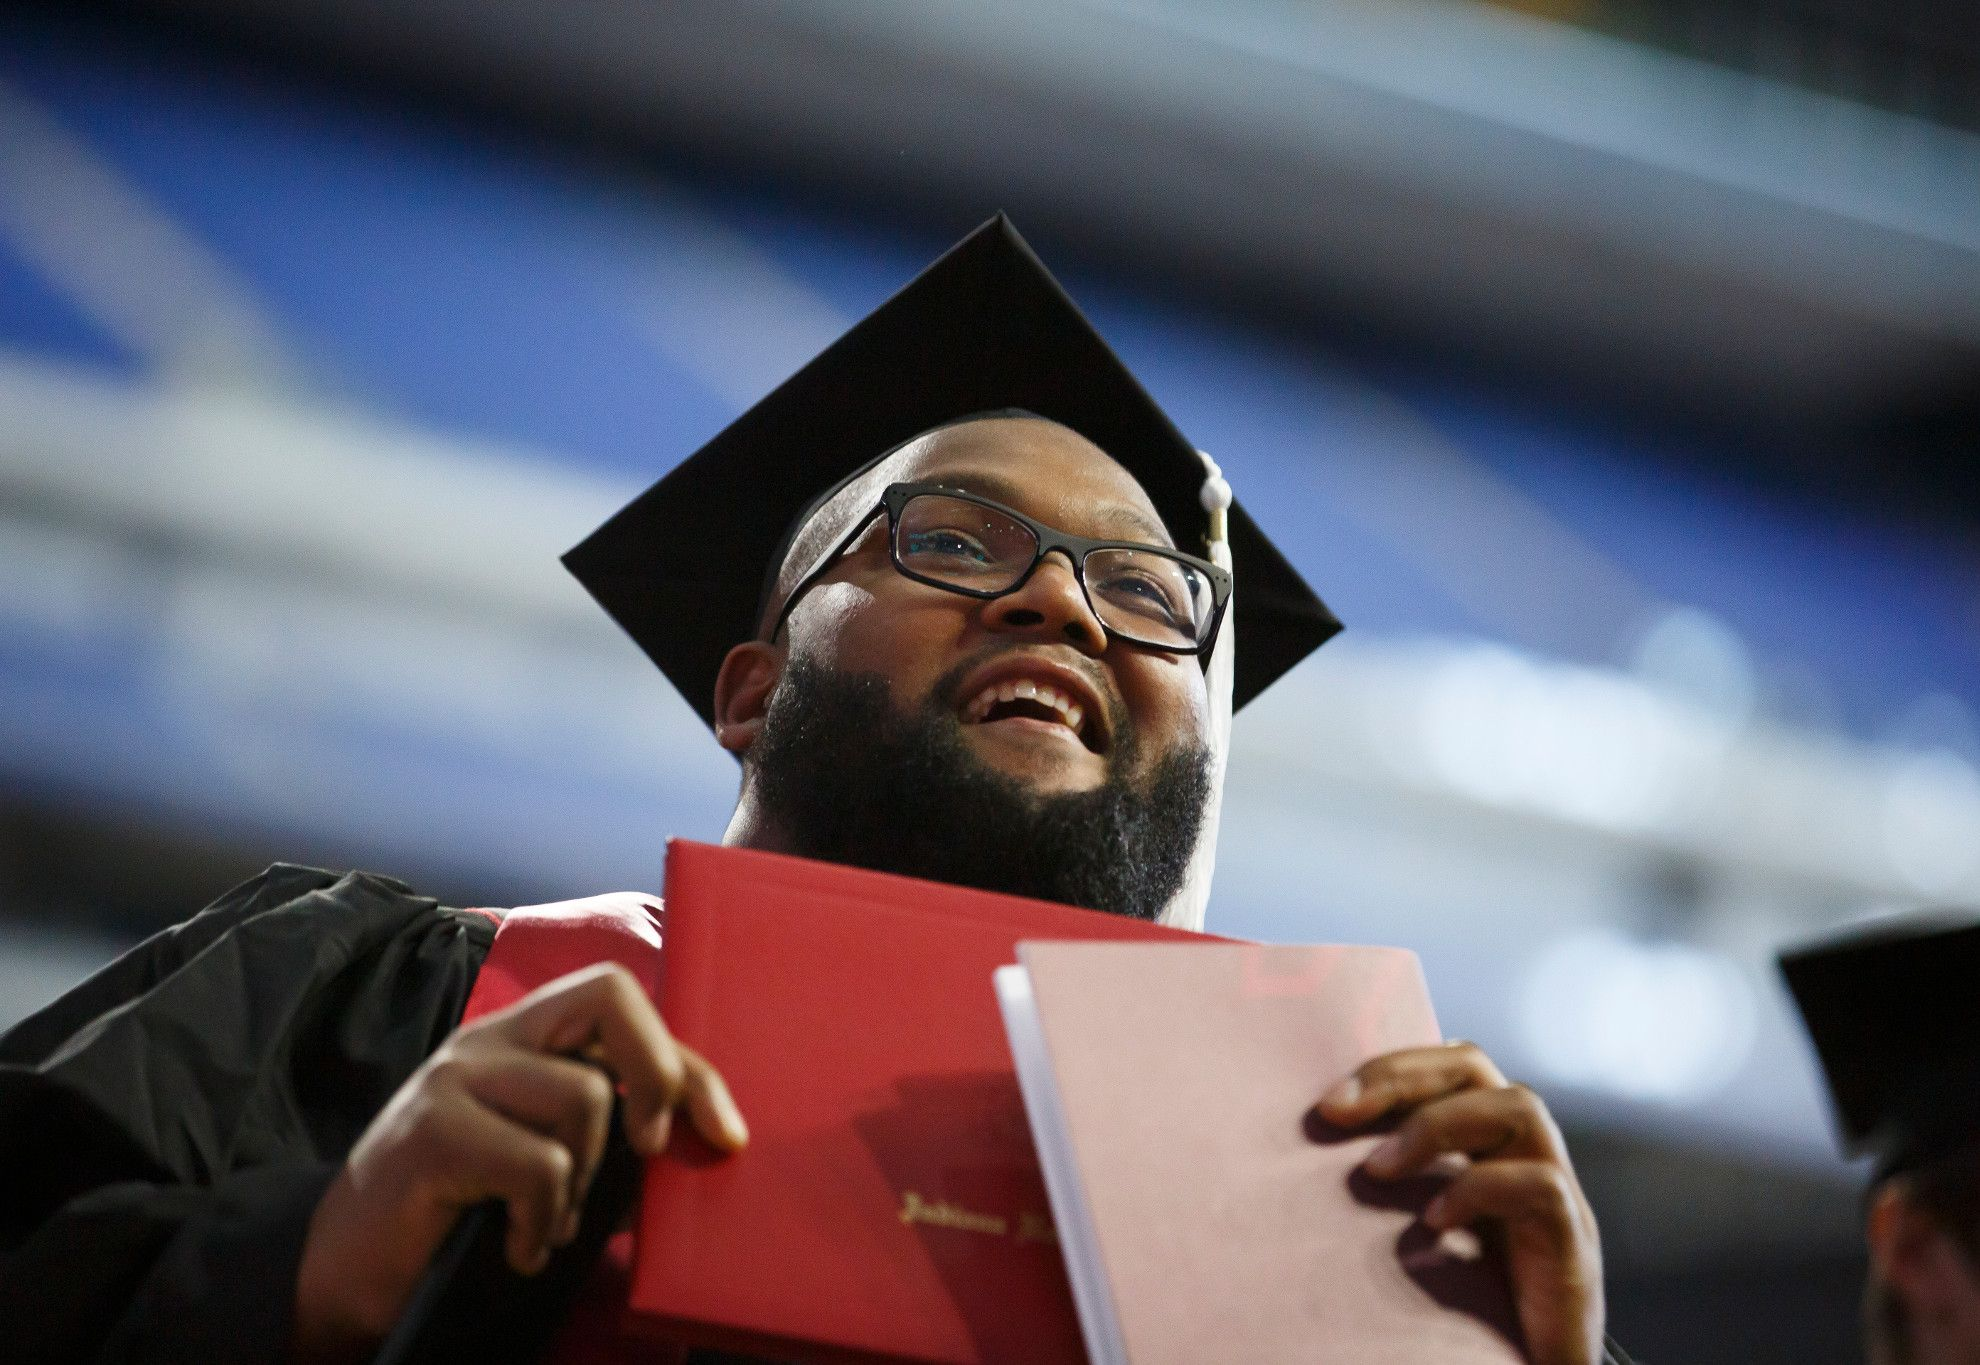 A man holding a diploma, wearing a cap and gown